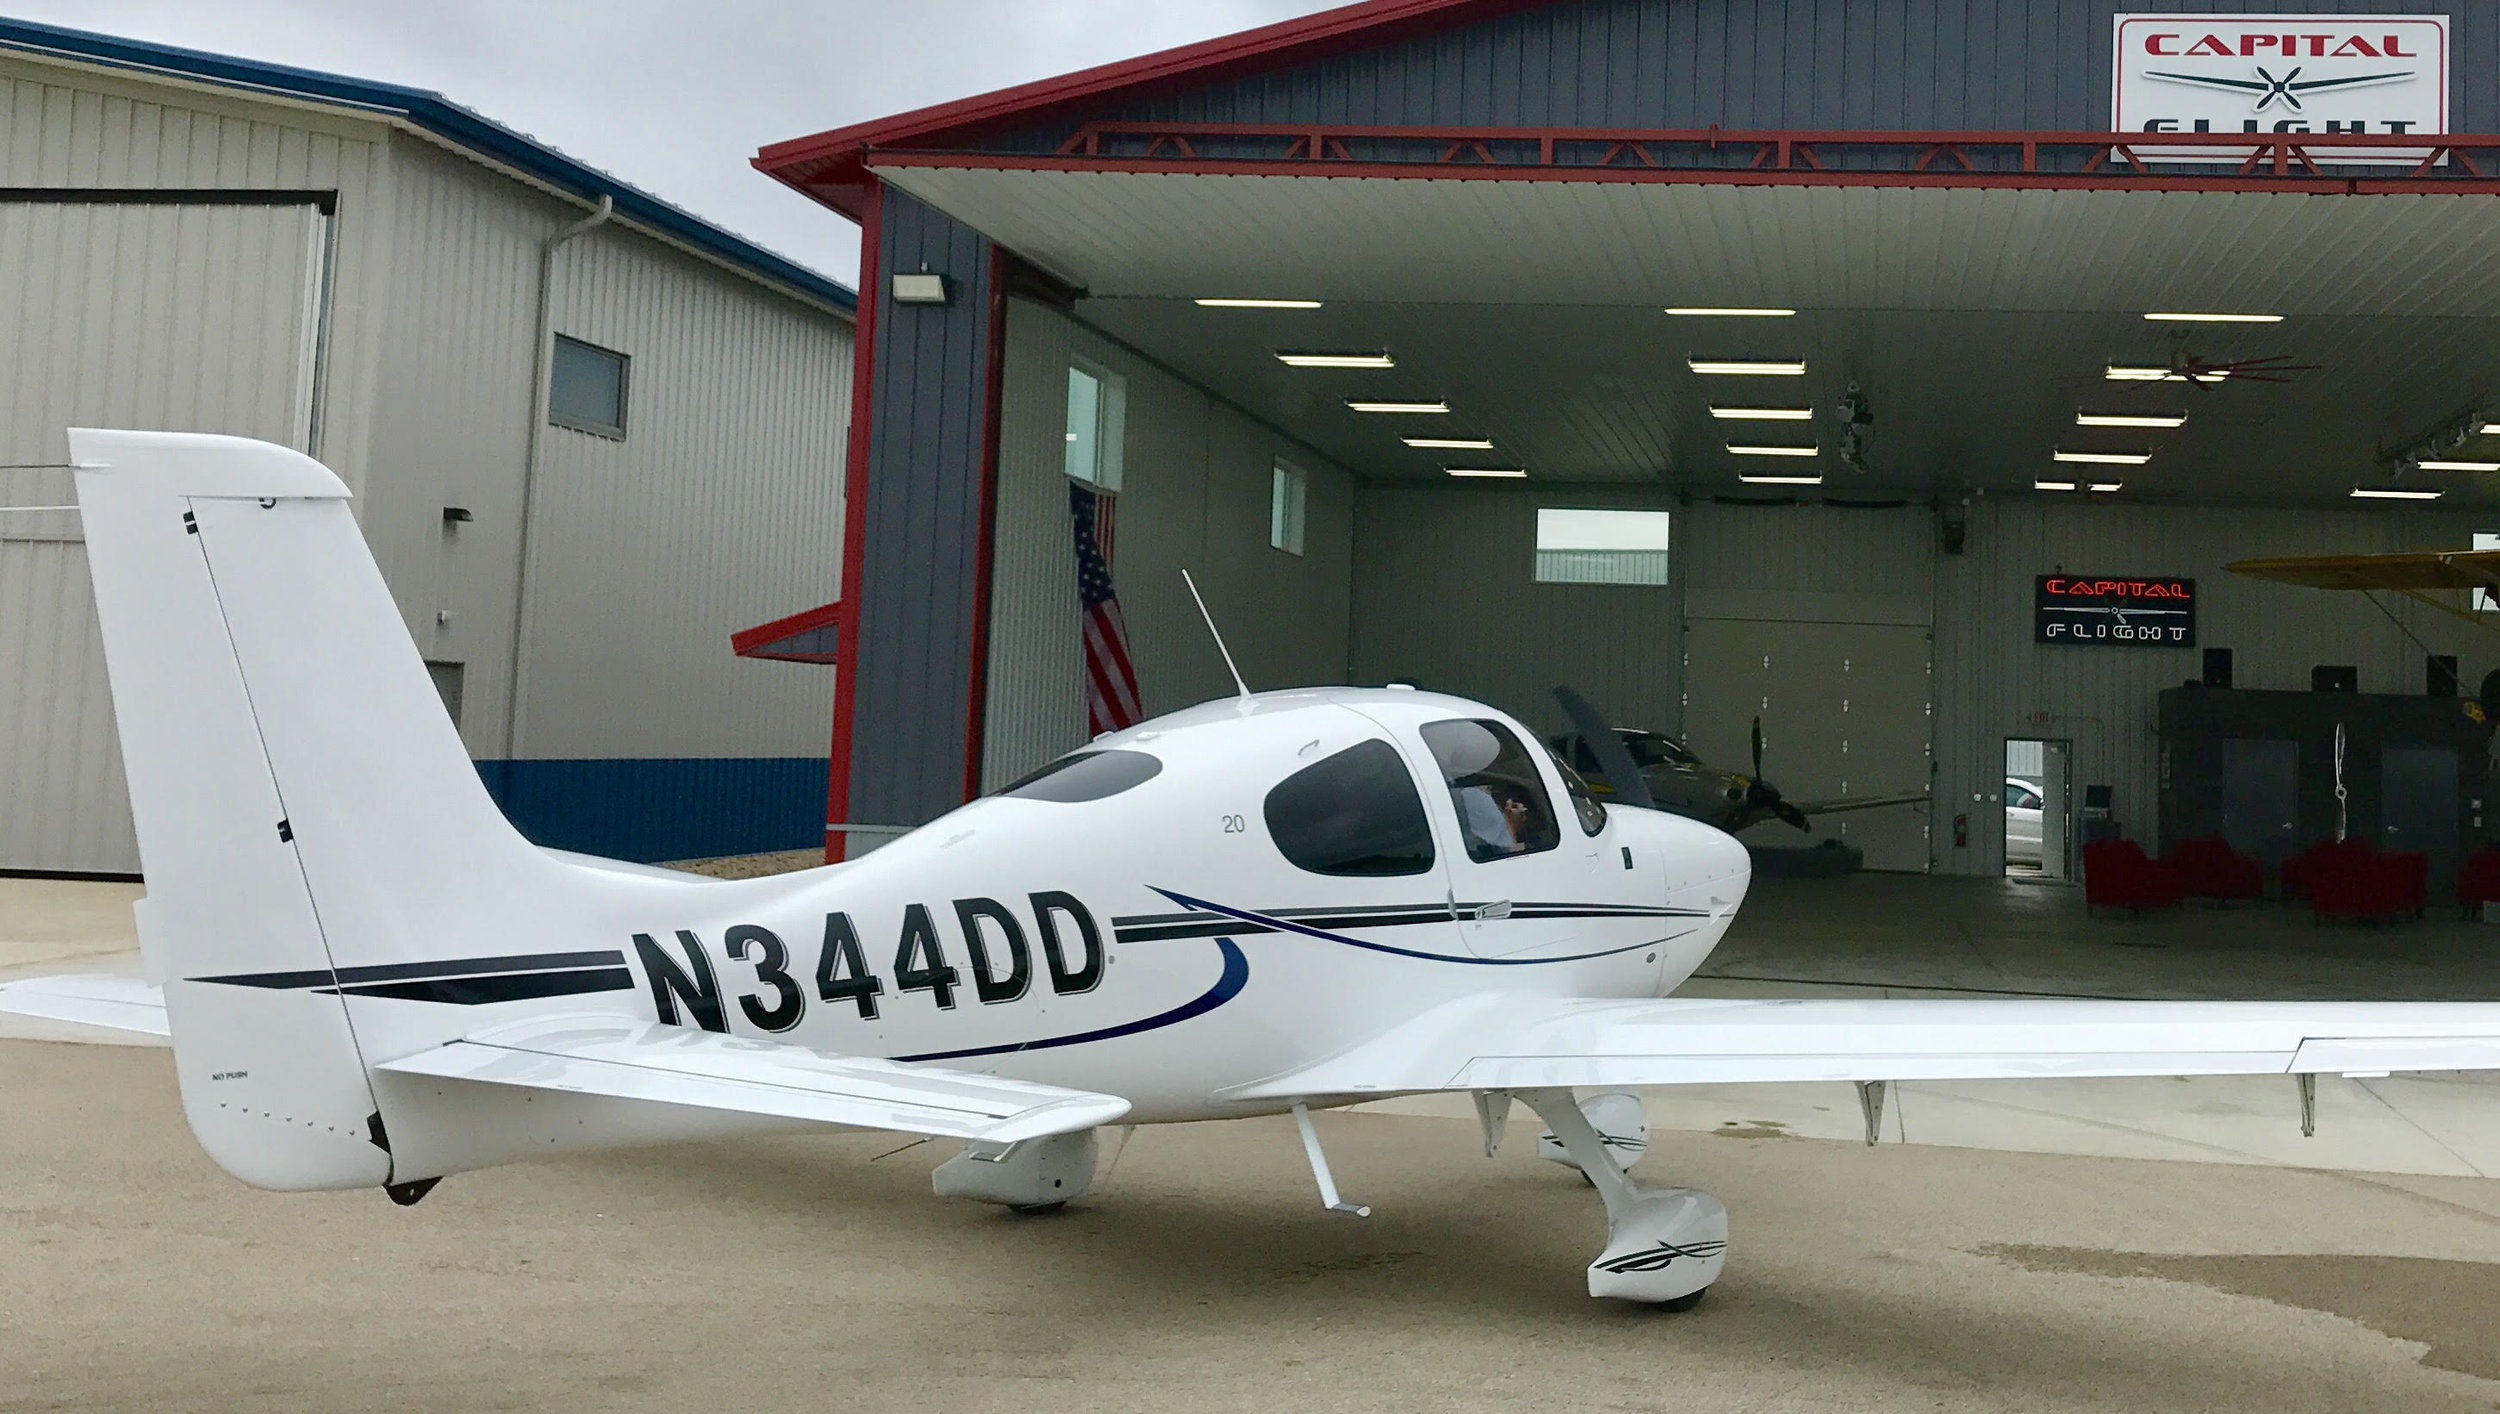 2017 Cirrus SR20 G6 Available for training and rental